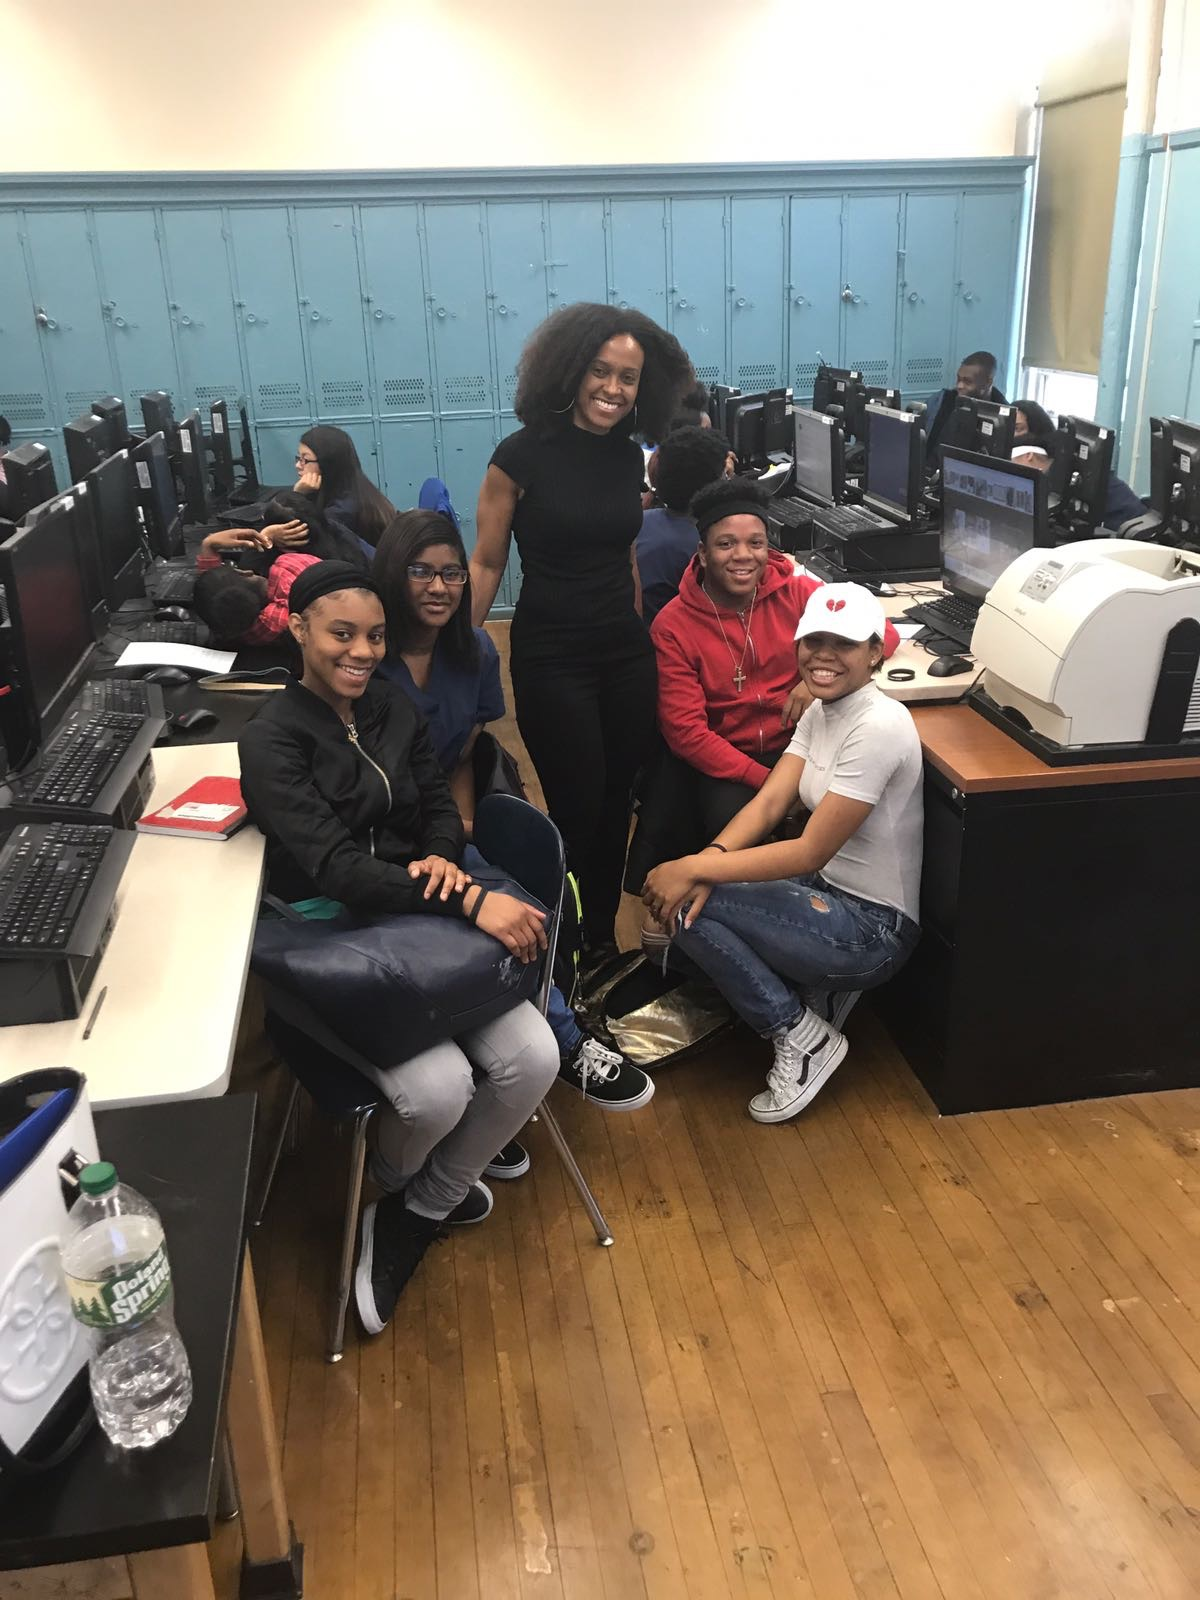 - Saran Nurse, Brooklyn business owner of Kikis Pet Spa & Grooming Boutiques. Inspiring our students to follow their dreams with a solid financial game plan.